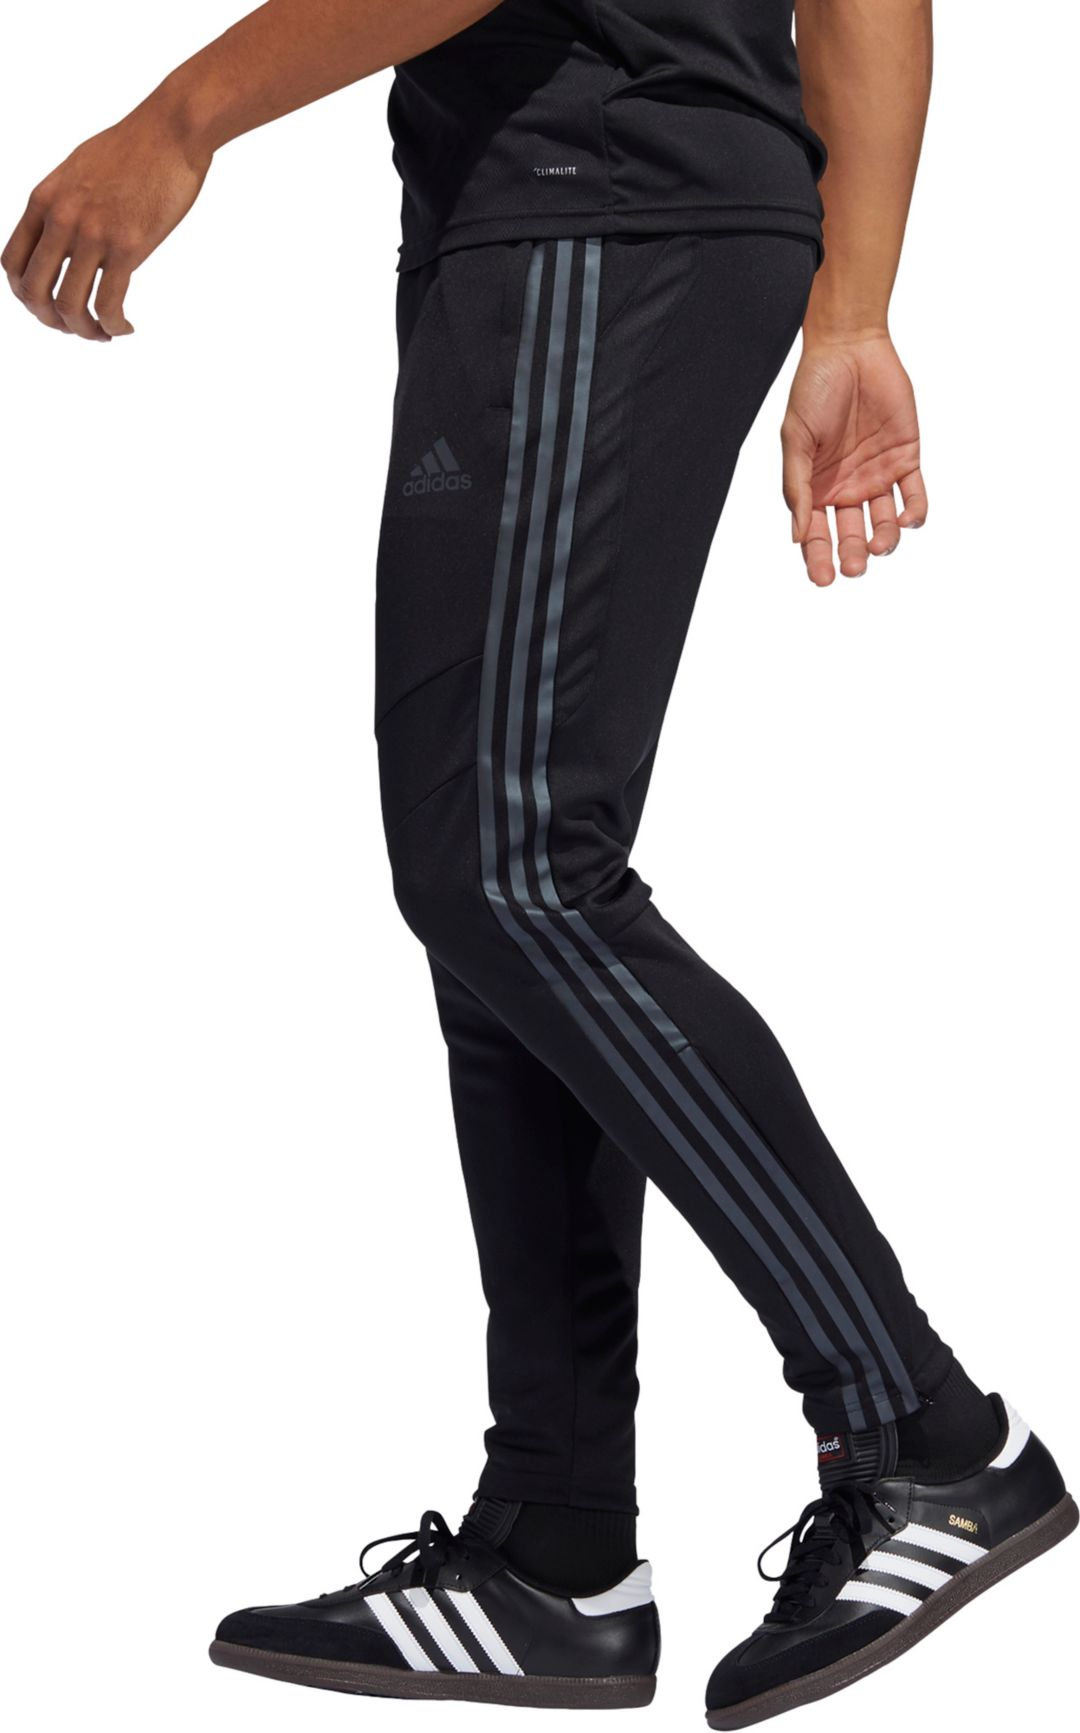 f8f977ff2 adidas Men's Metallic Tiro 19 Training Pants. noImageFound. Previous